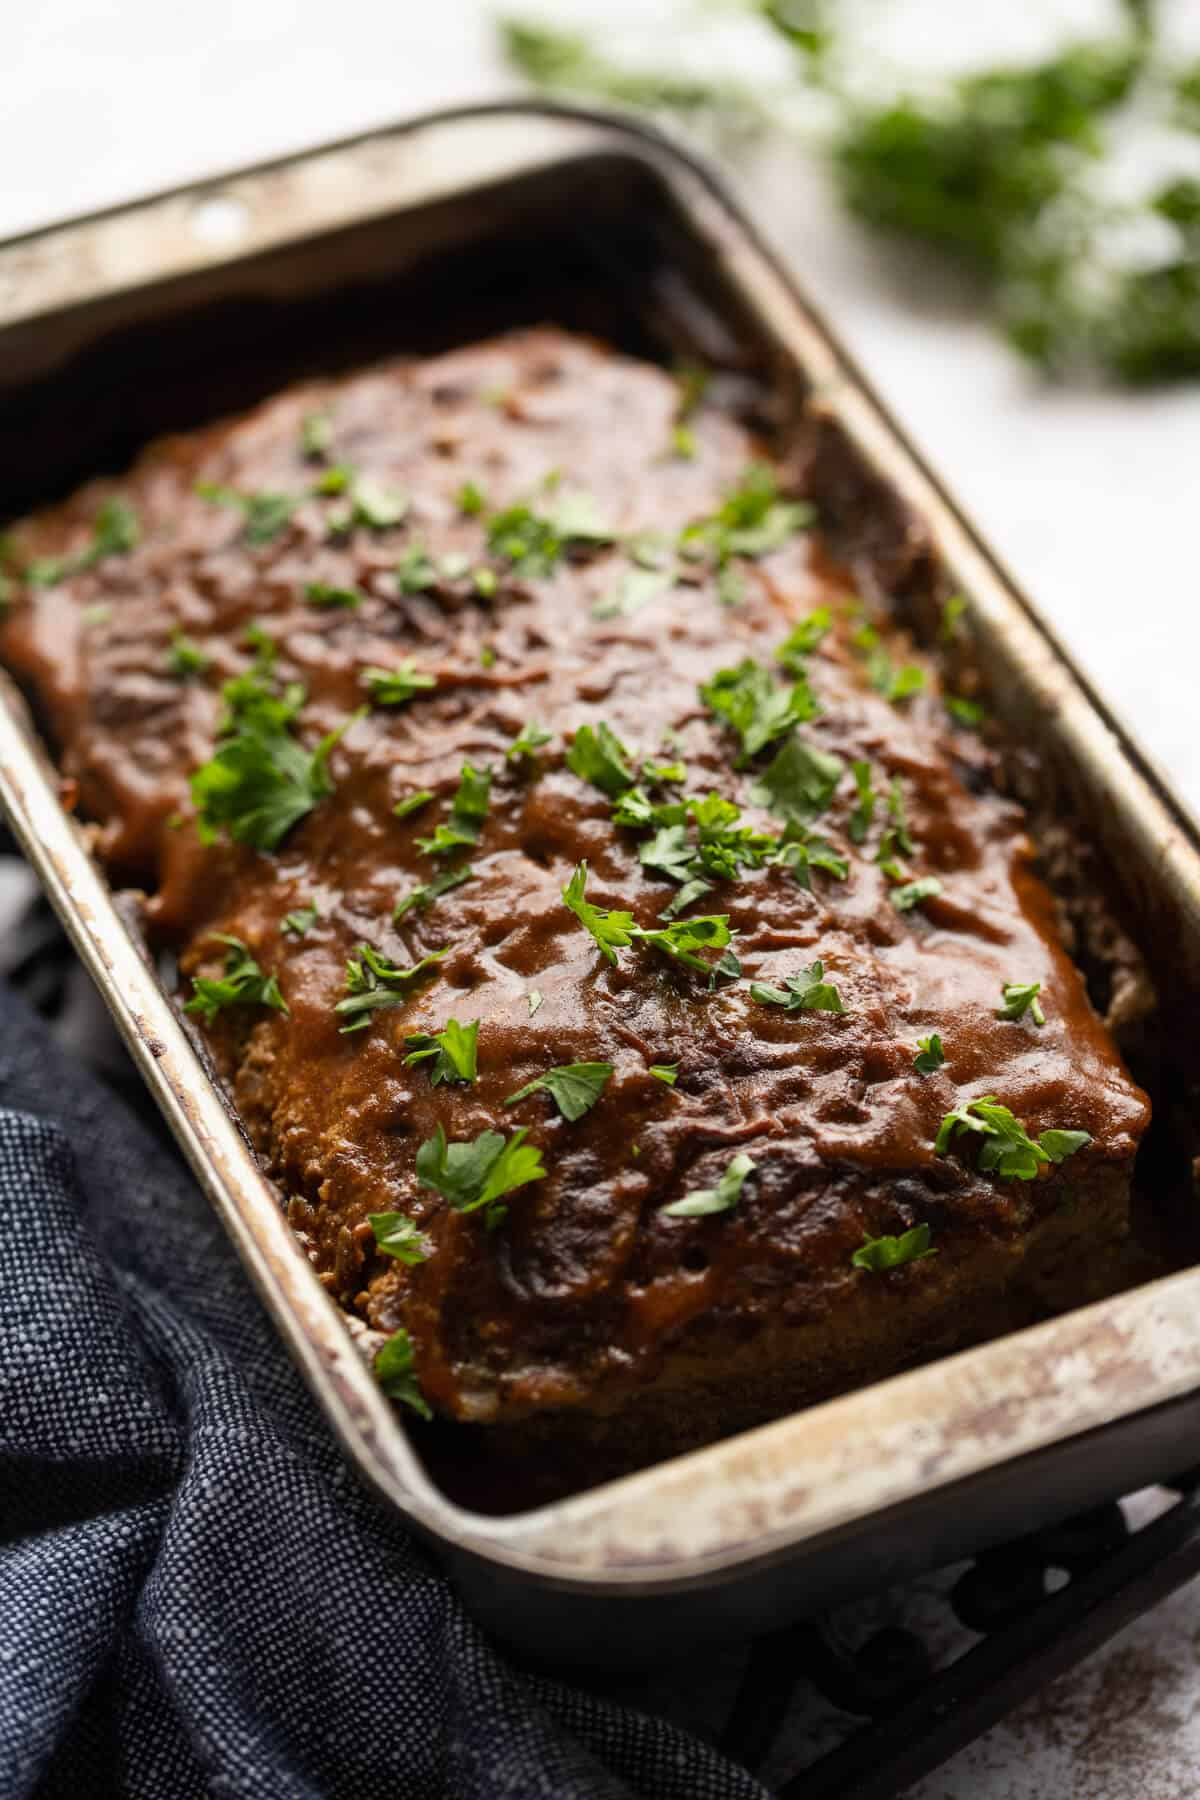 cooked meatloaf glazed with bbq sauce and garnished with parsley in a loaf pan